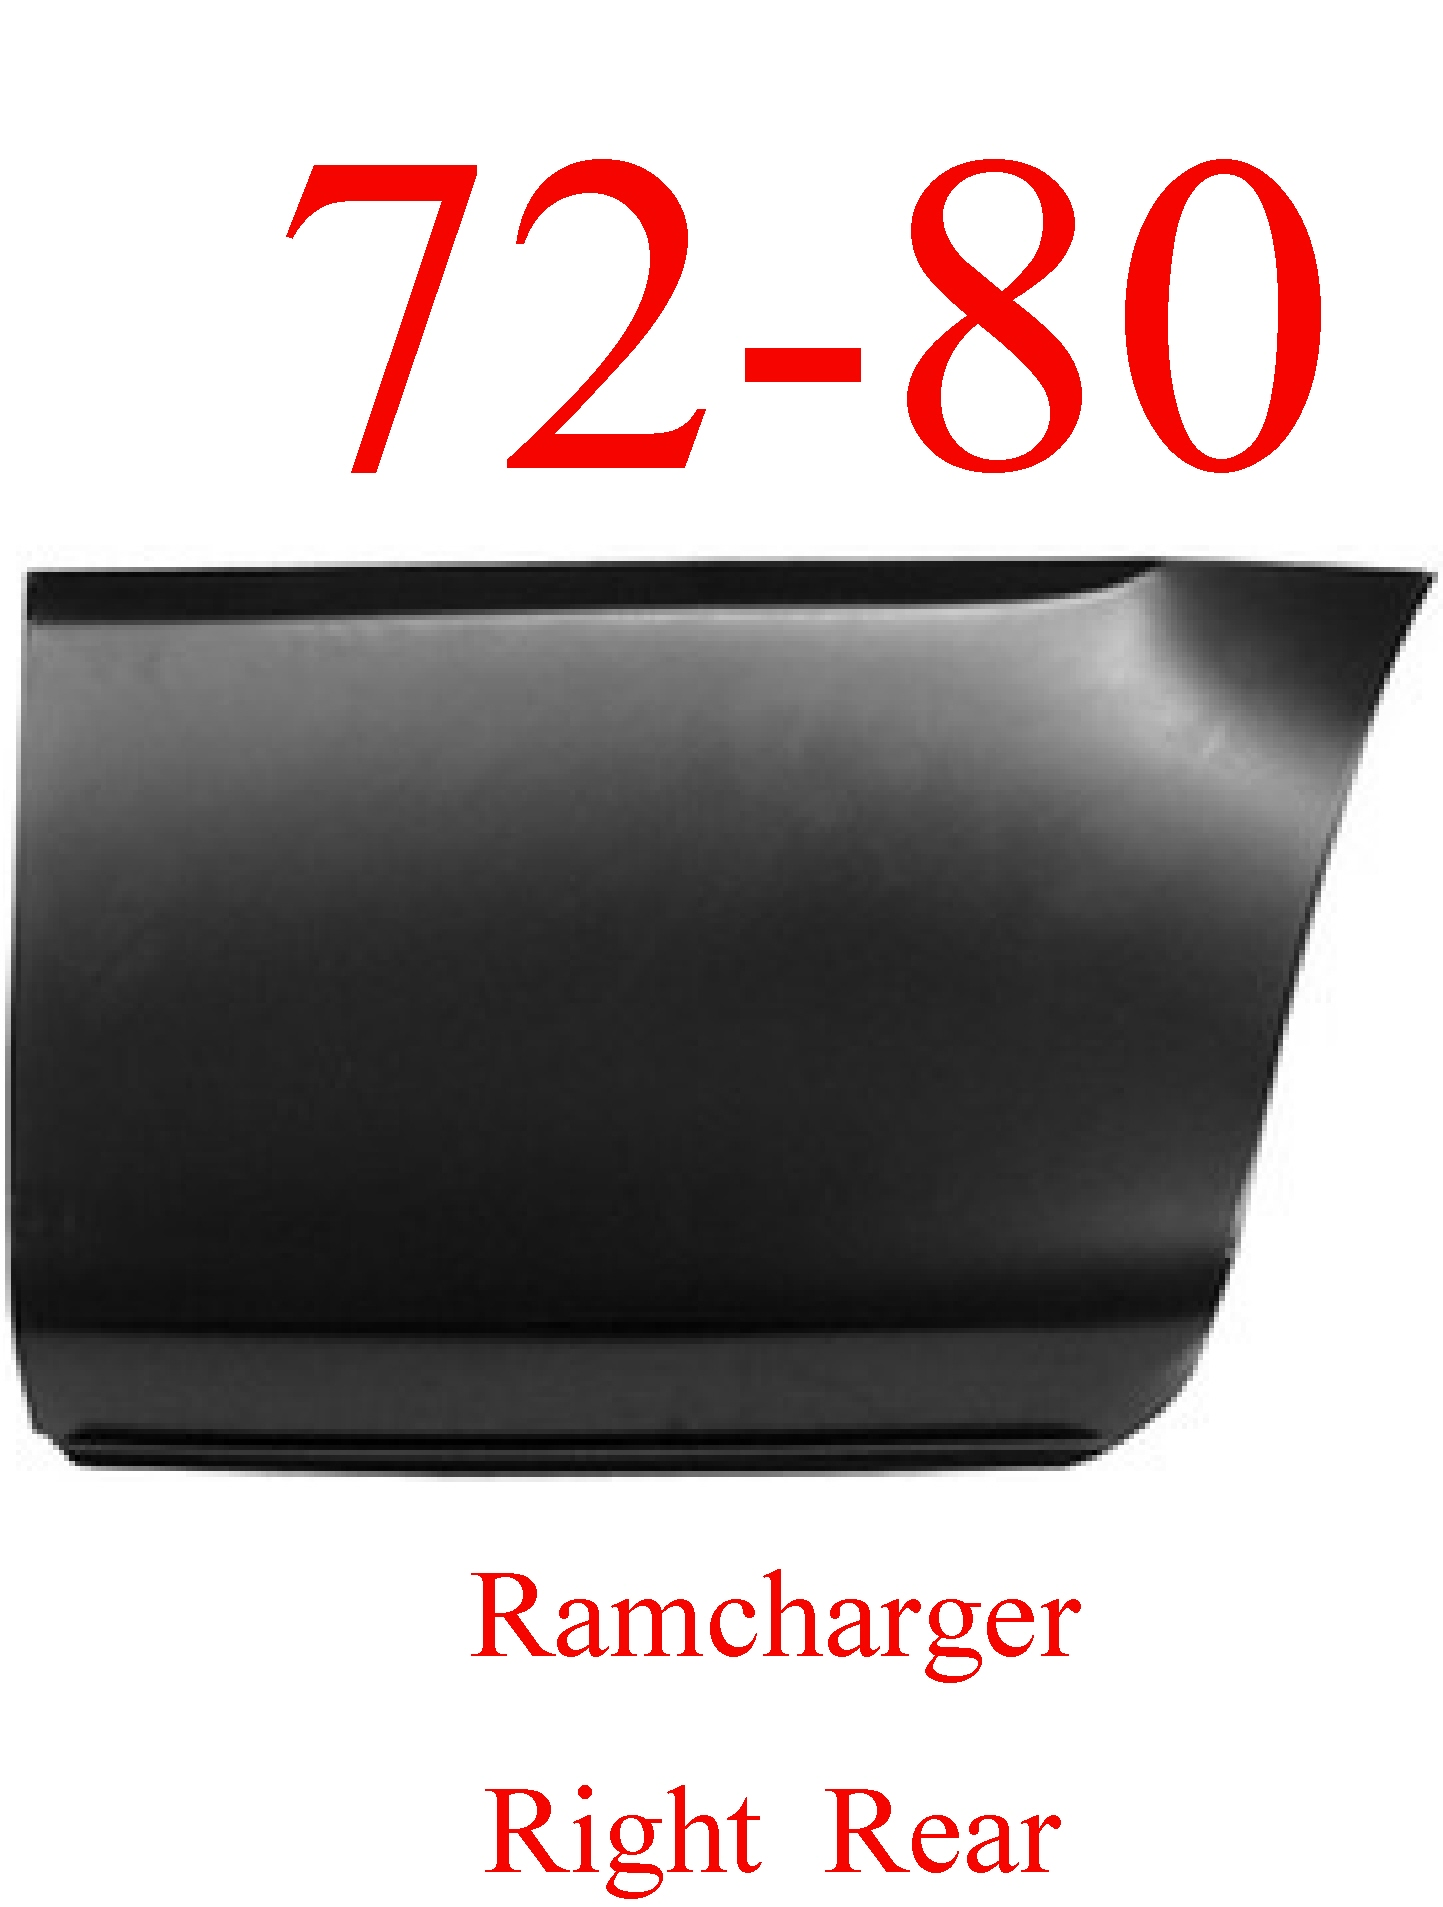 72-80 Dodge Ramcharger Right Rear Lower Bed Panel